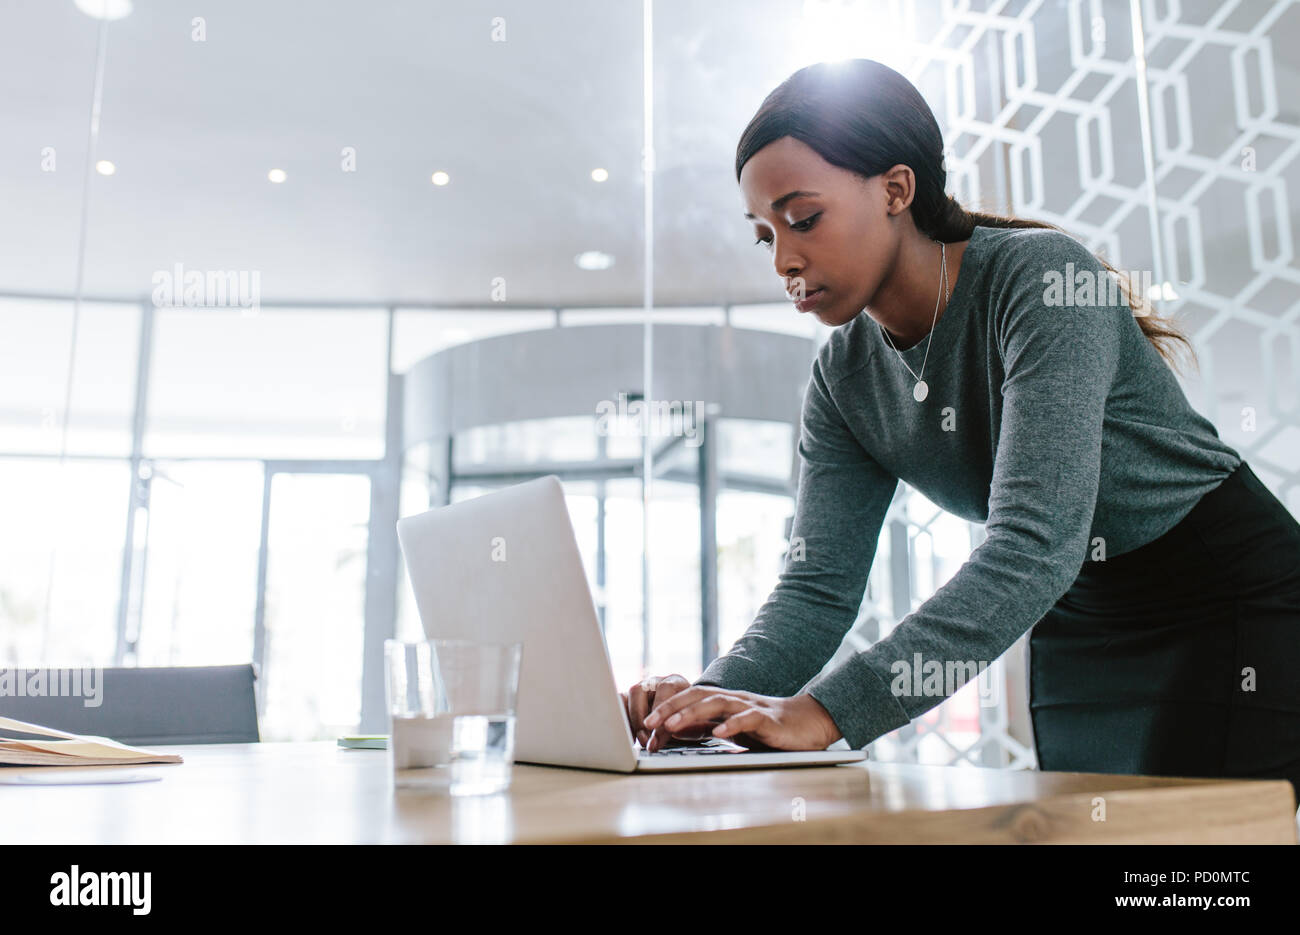 Young woman standing by conference table and working on laptop. Female preparing a business proposal before a meeting in boardroom. - Stock Image